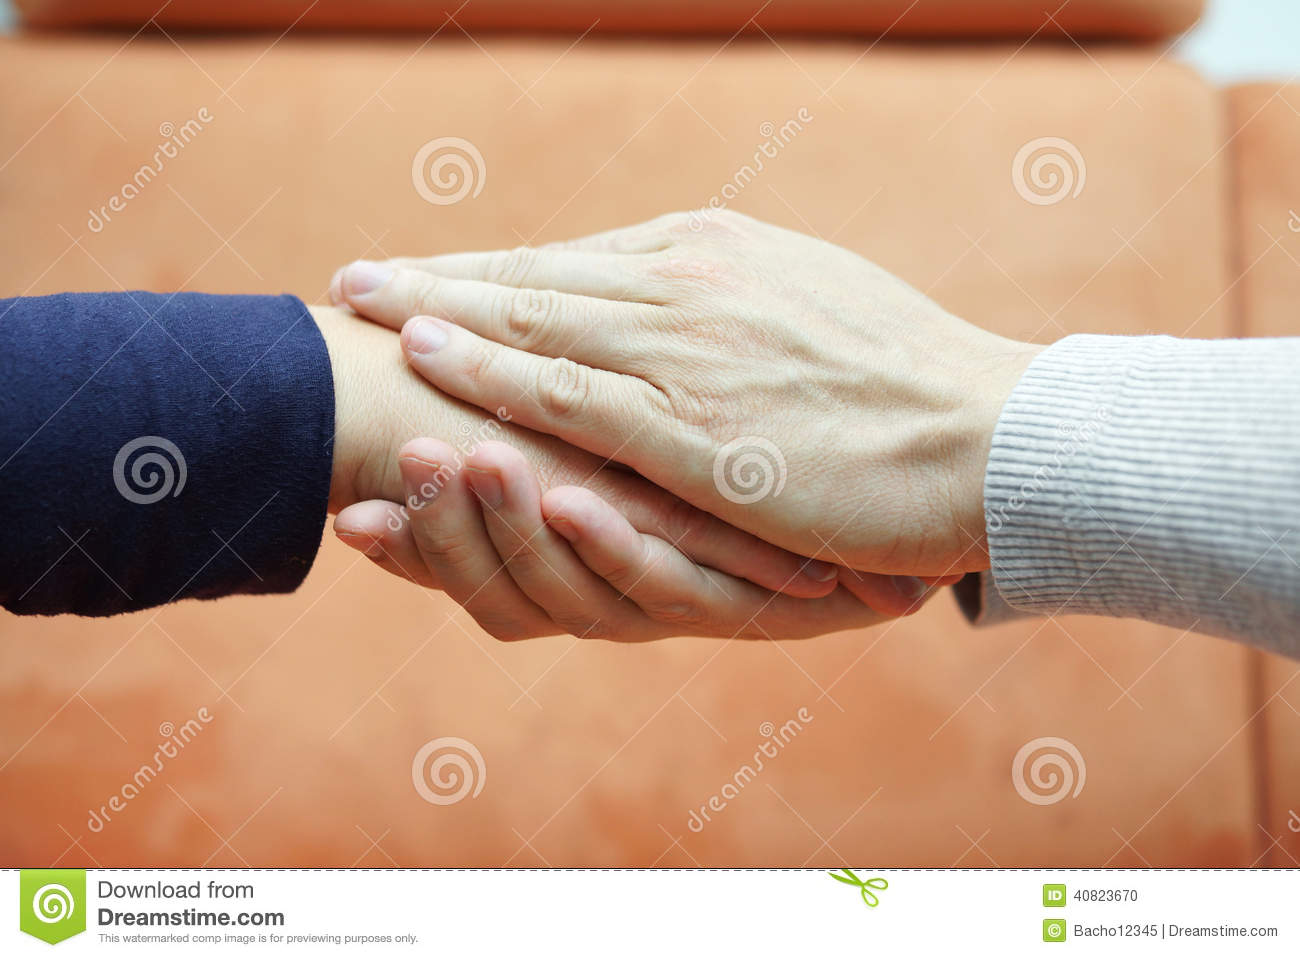 Man hands holding woman hand from both sides. Compassion